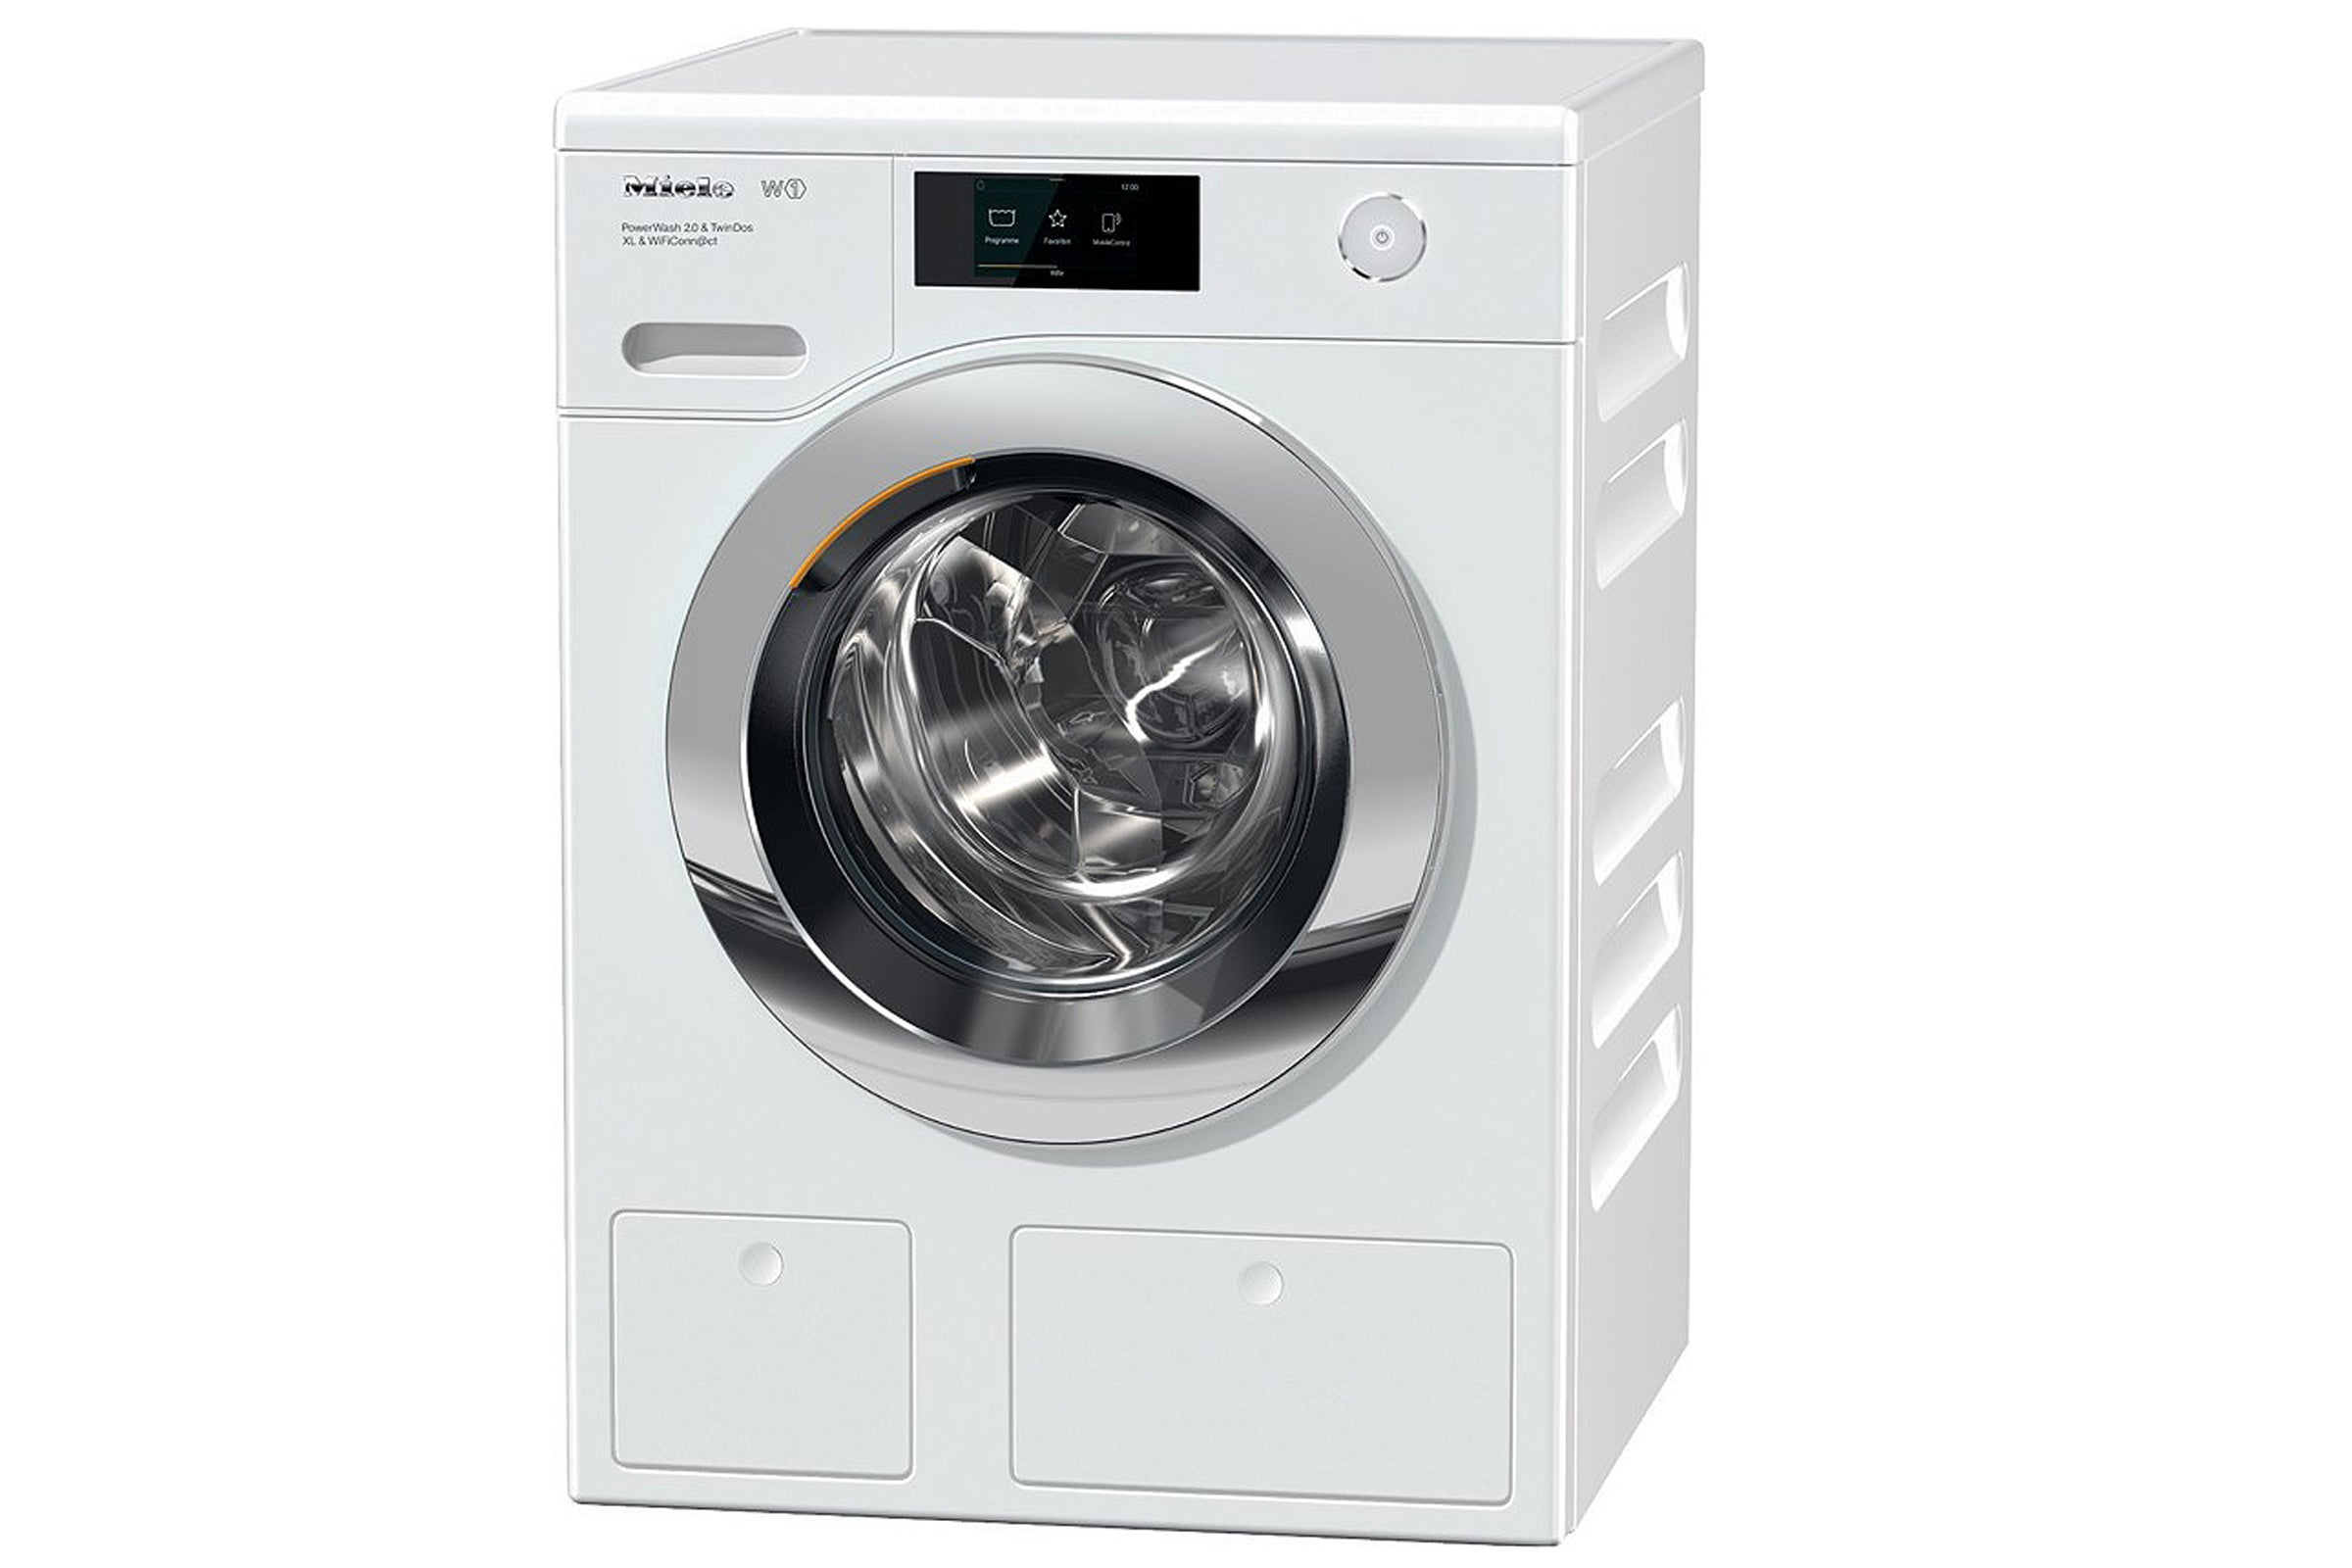 Best washing machine 2019: The top clothes cleaners